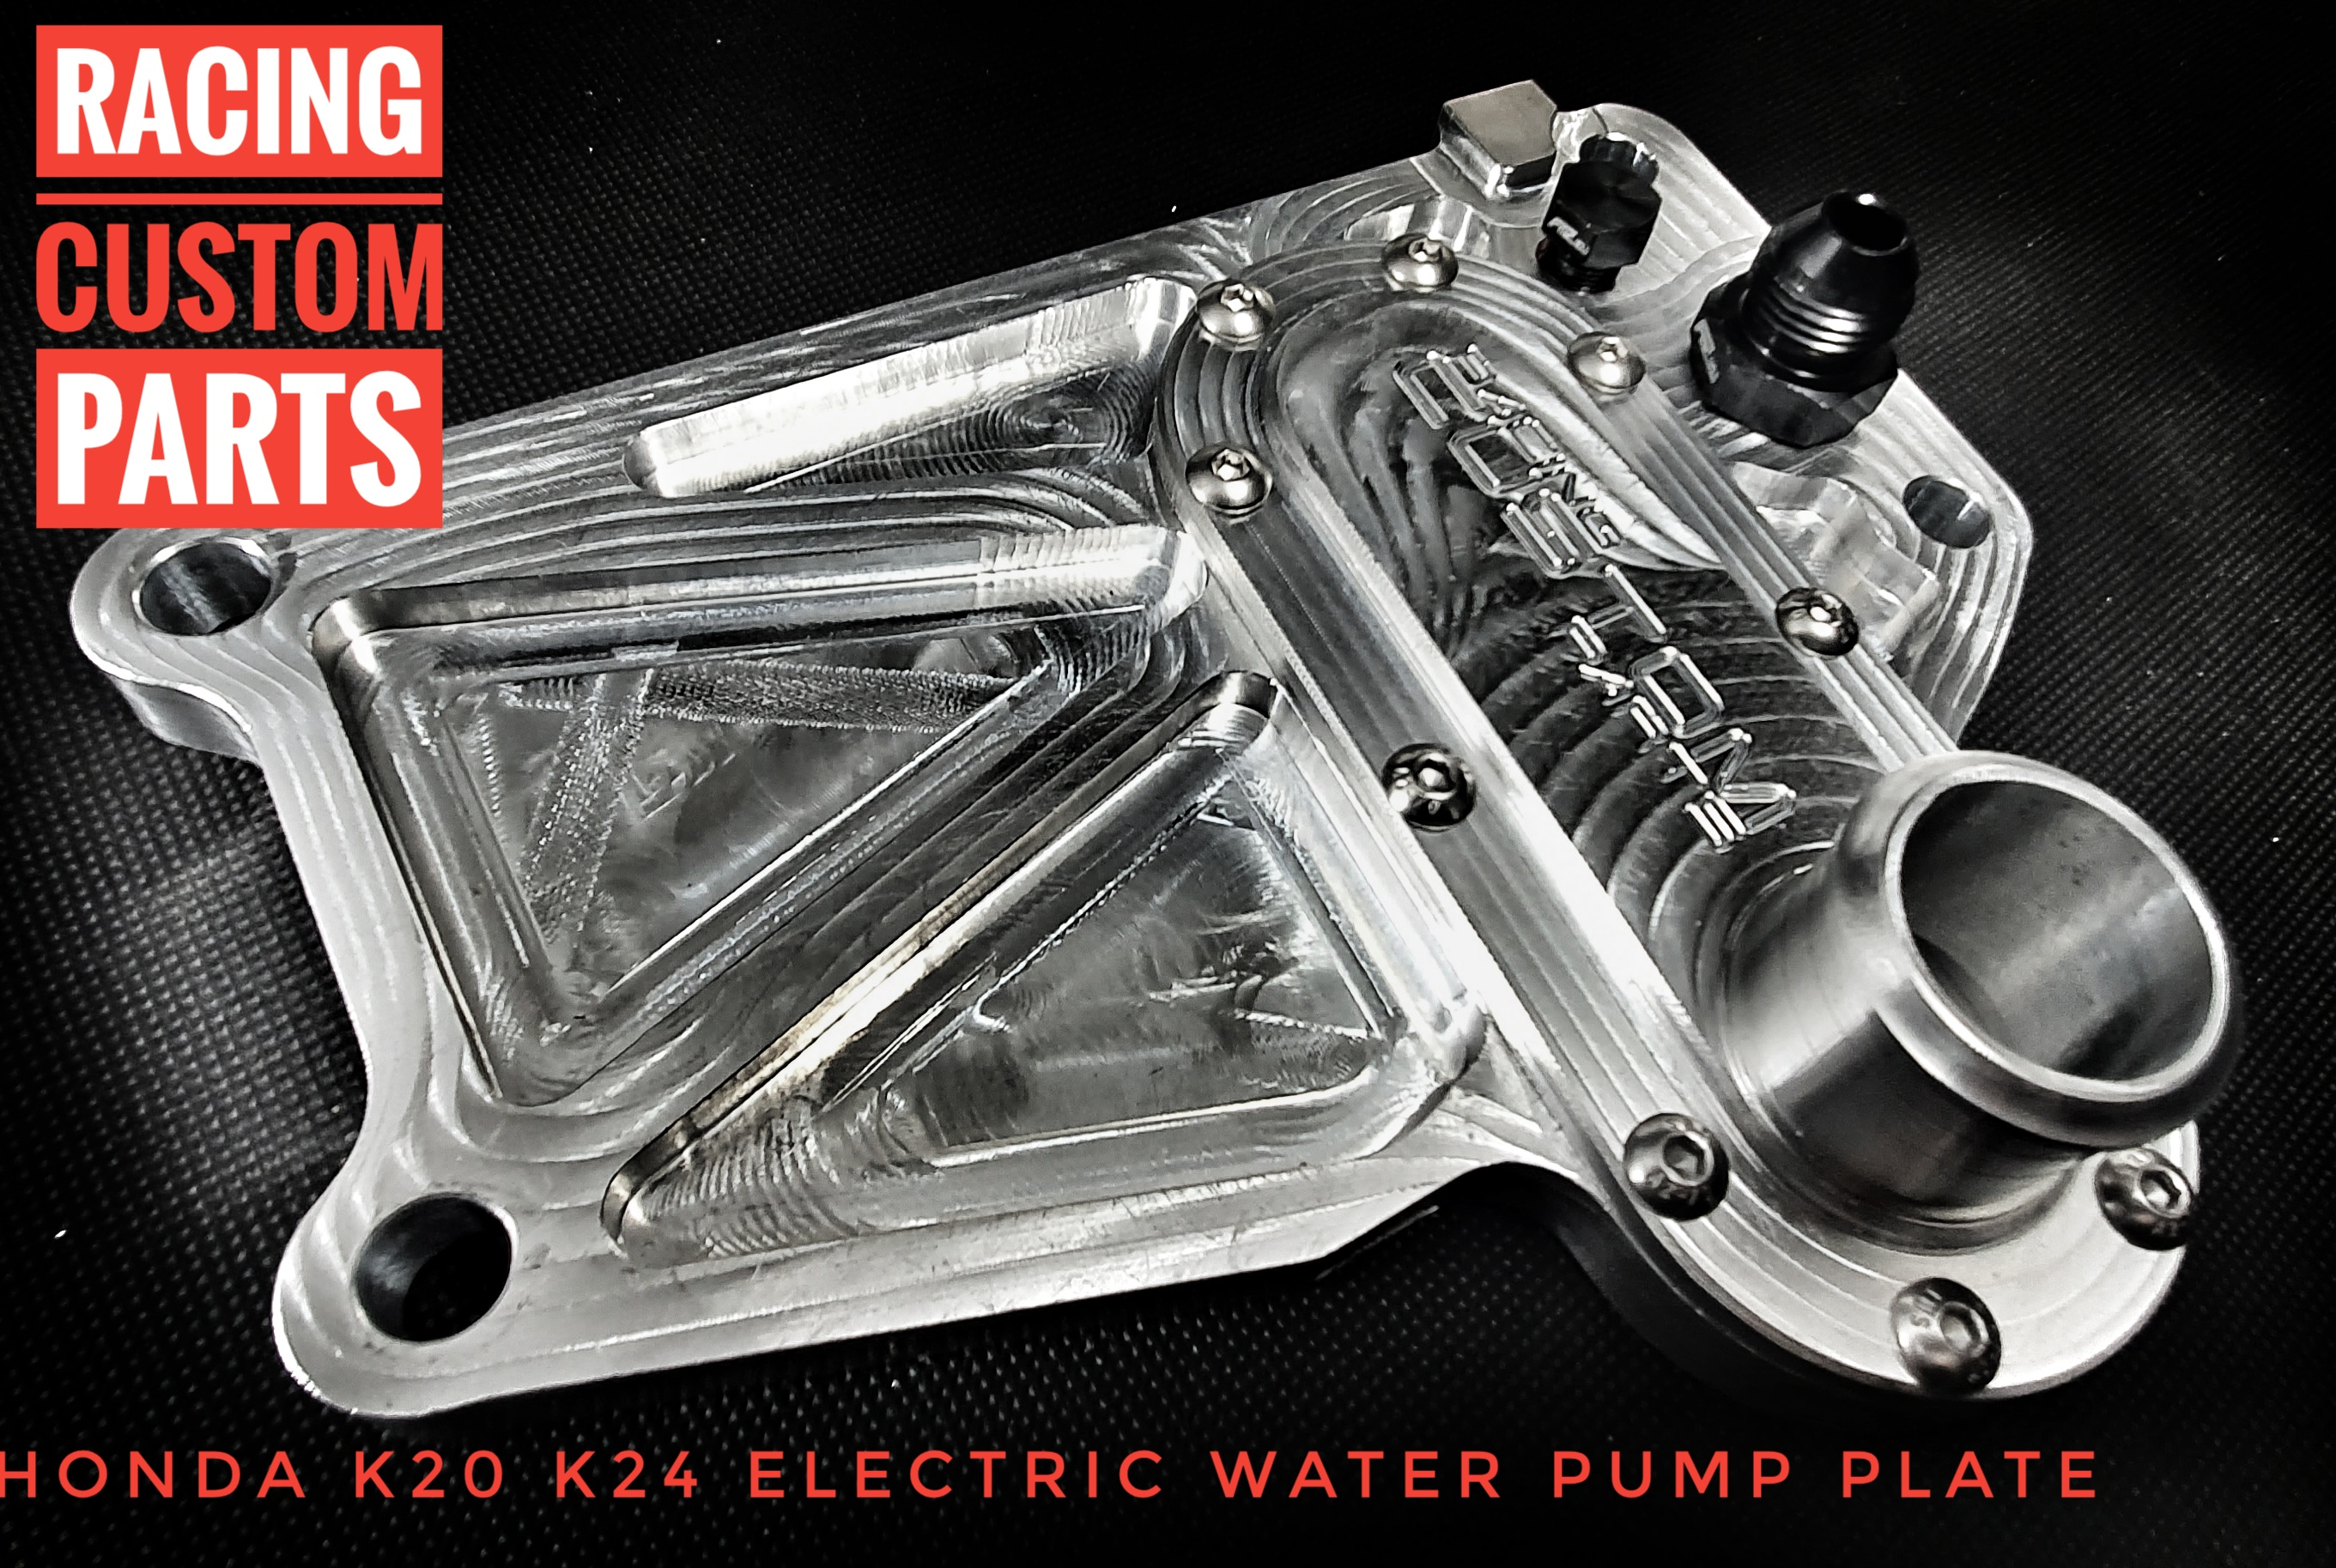 Honda K20 K24 electric water paump adapter racing custom parts billet cnc